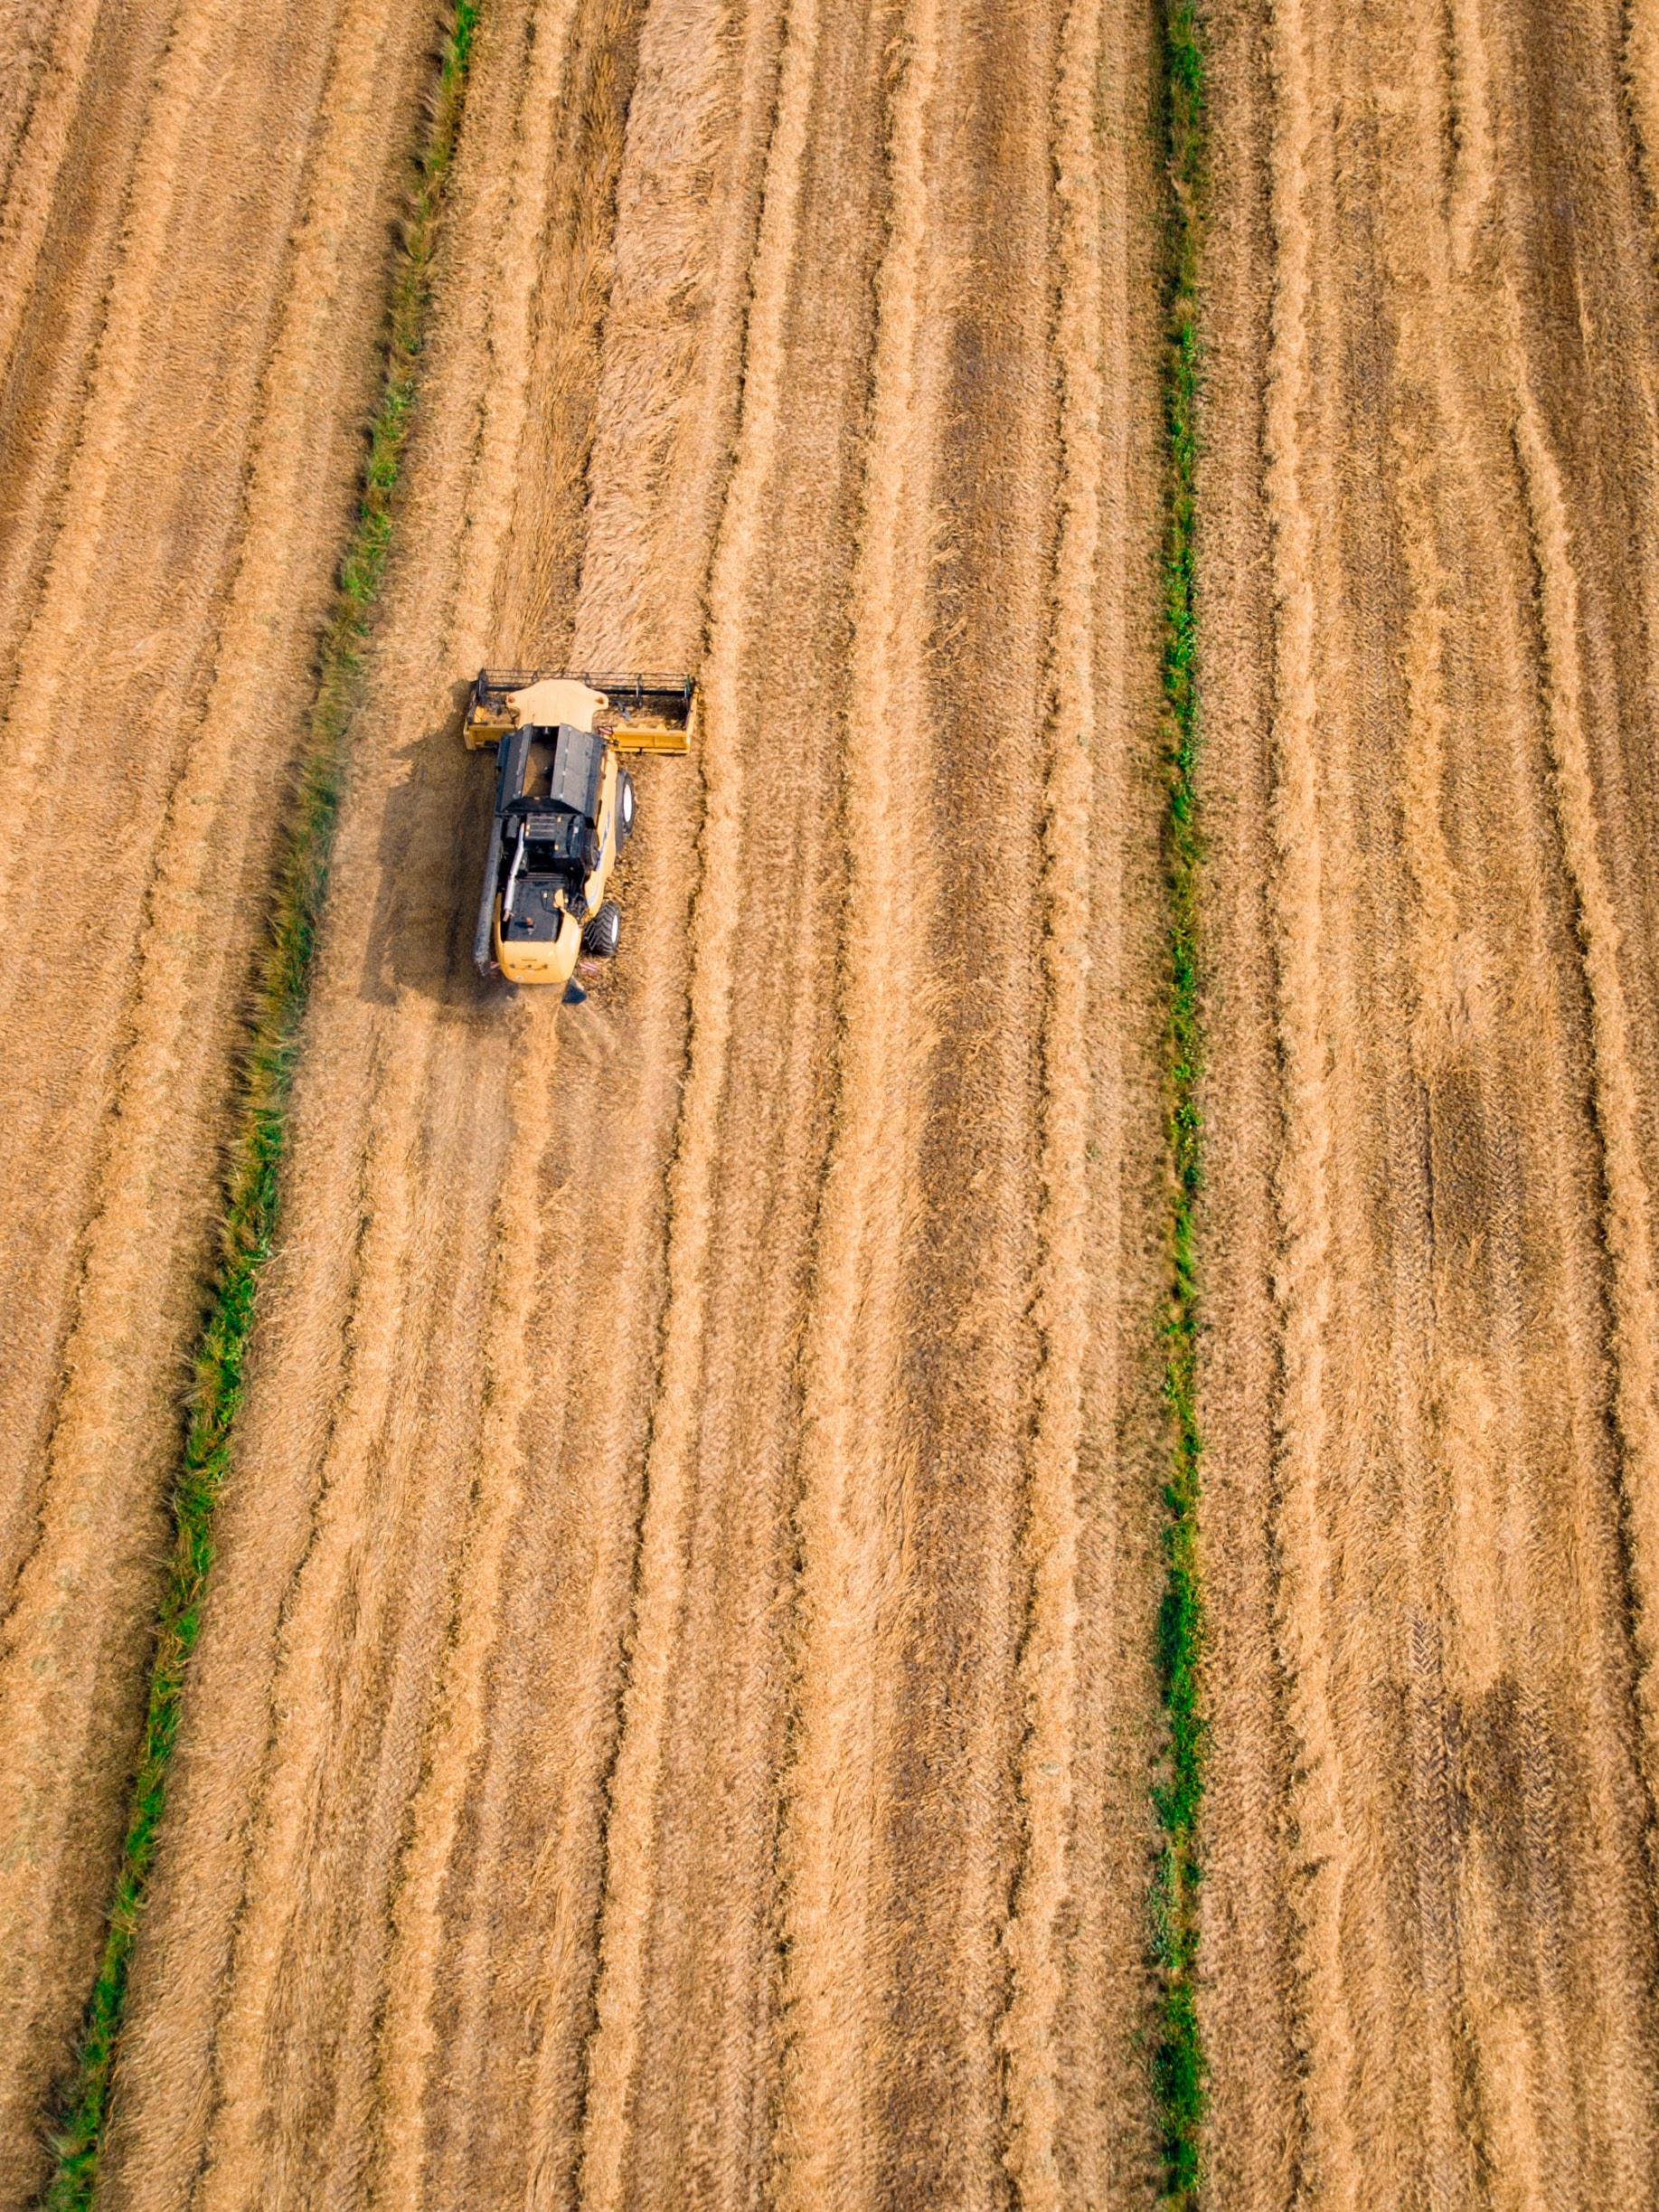 A drone shot of a harvester in a field